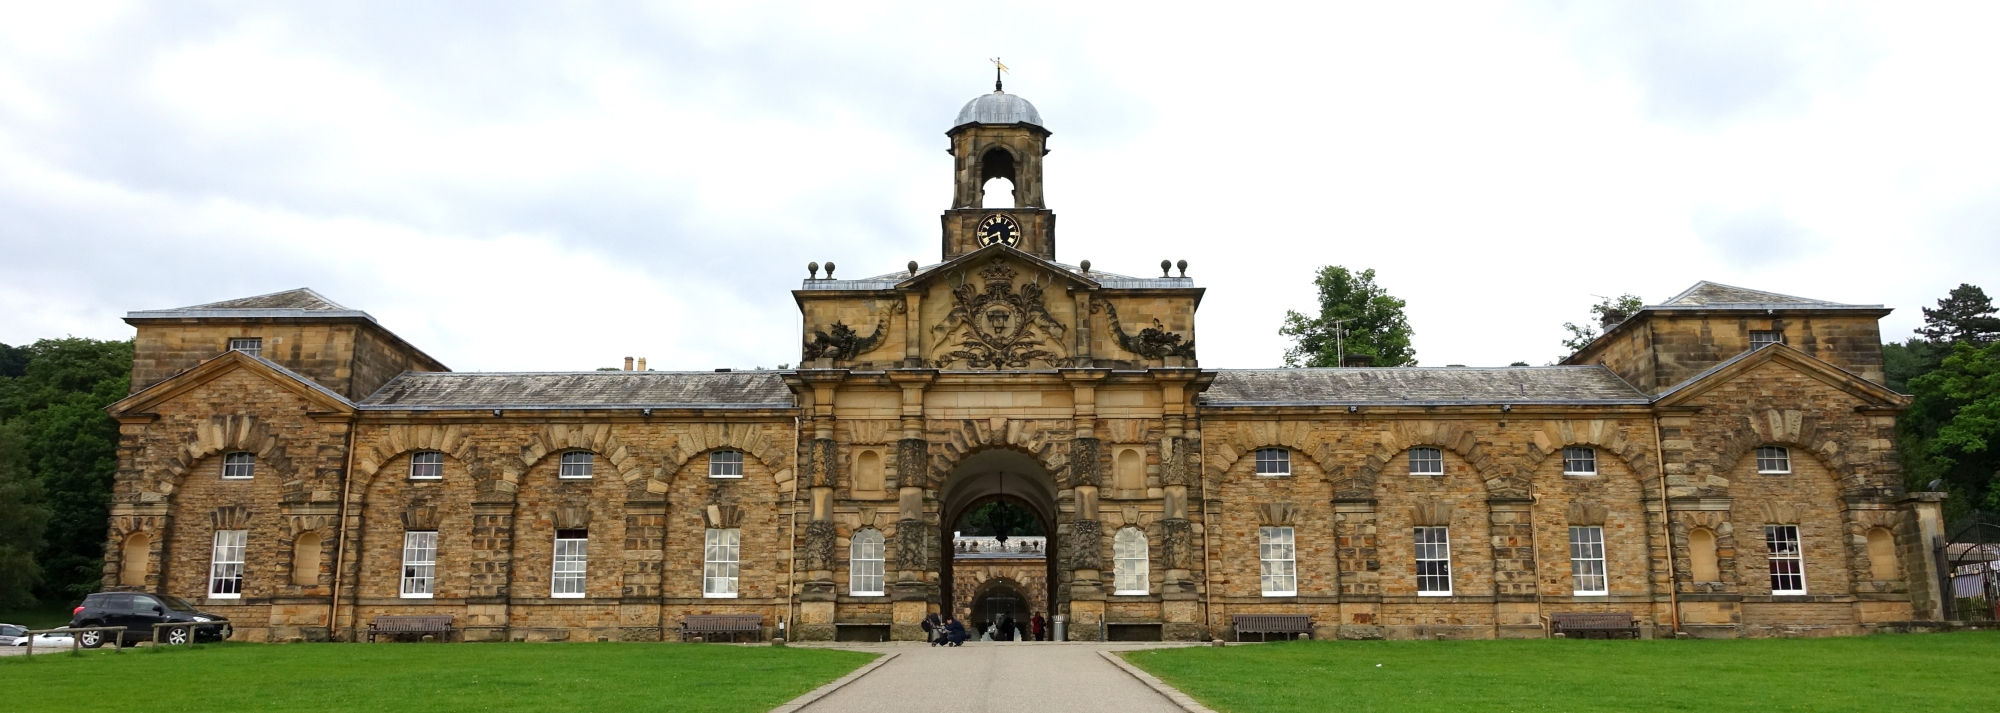 Visit Chatsworth House